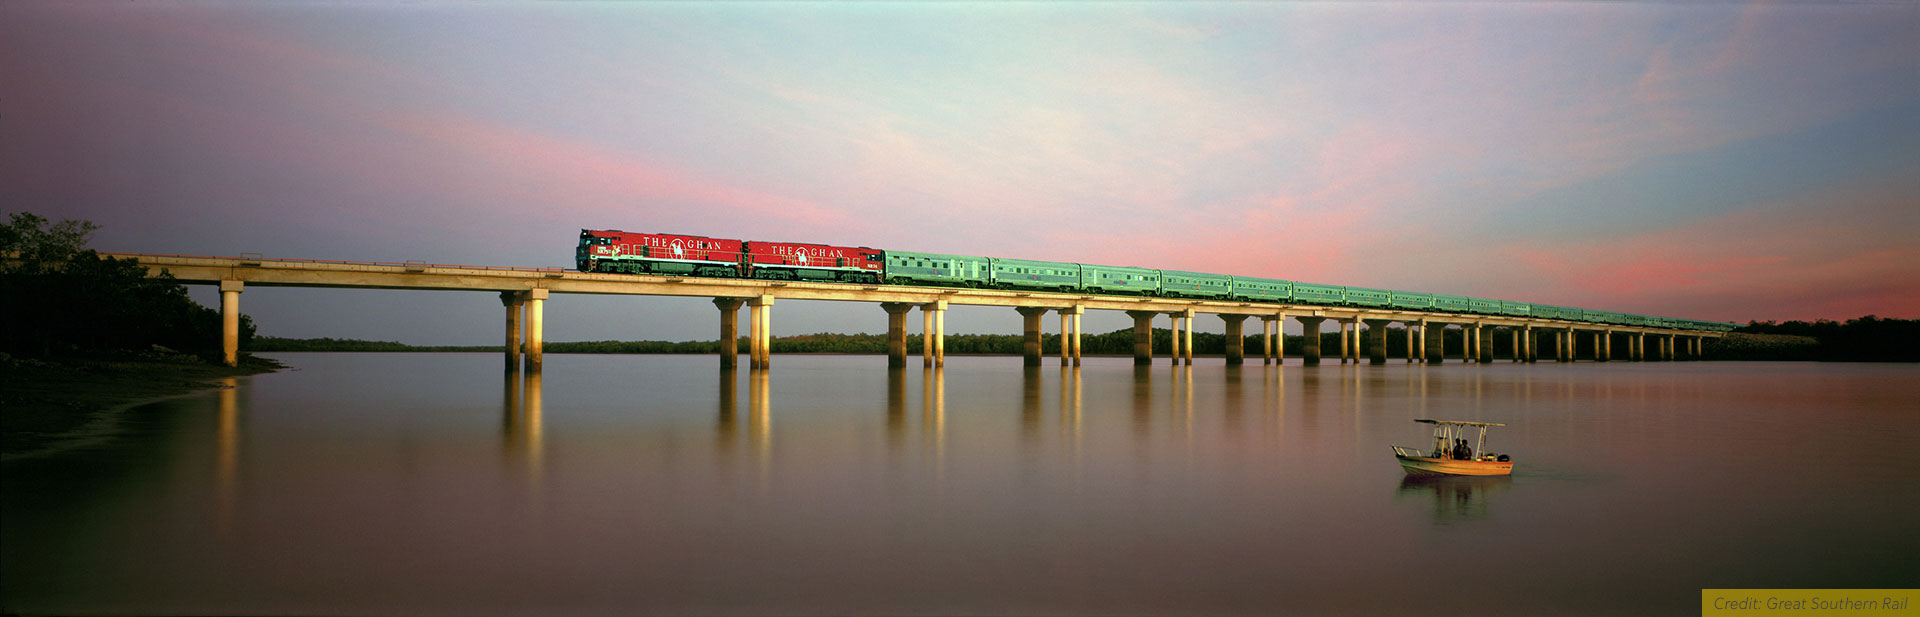 Panorama of The Ghan on the bridge over Elizabeth River, NT, Australia